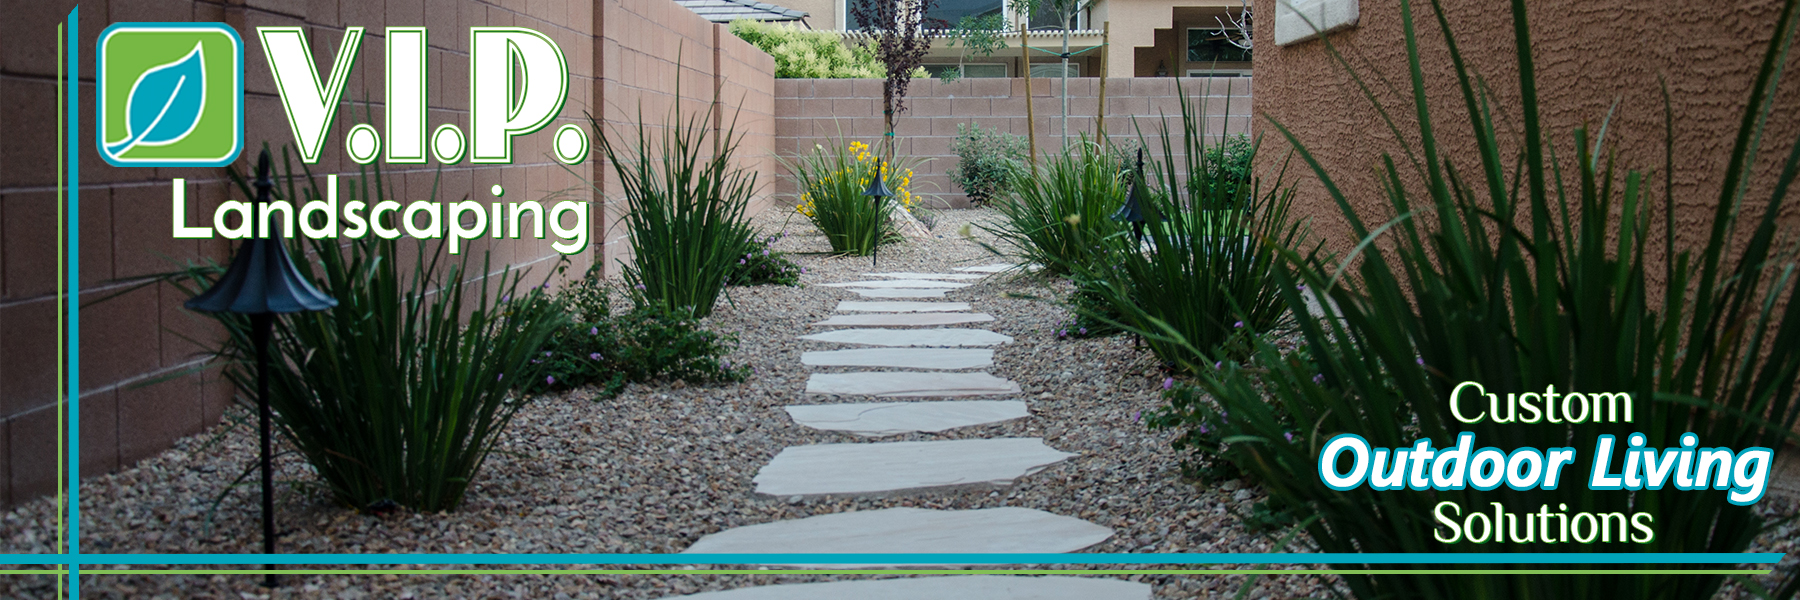 Desert Landscapes - Pavers and Decorative Rocks, Boulders and Gravel Rocks